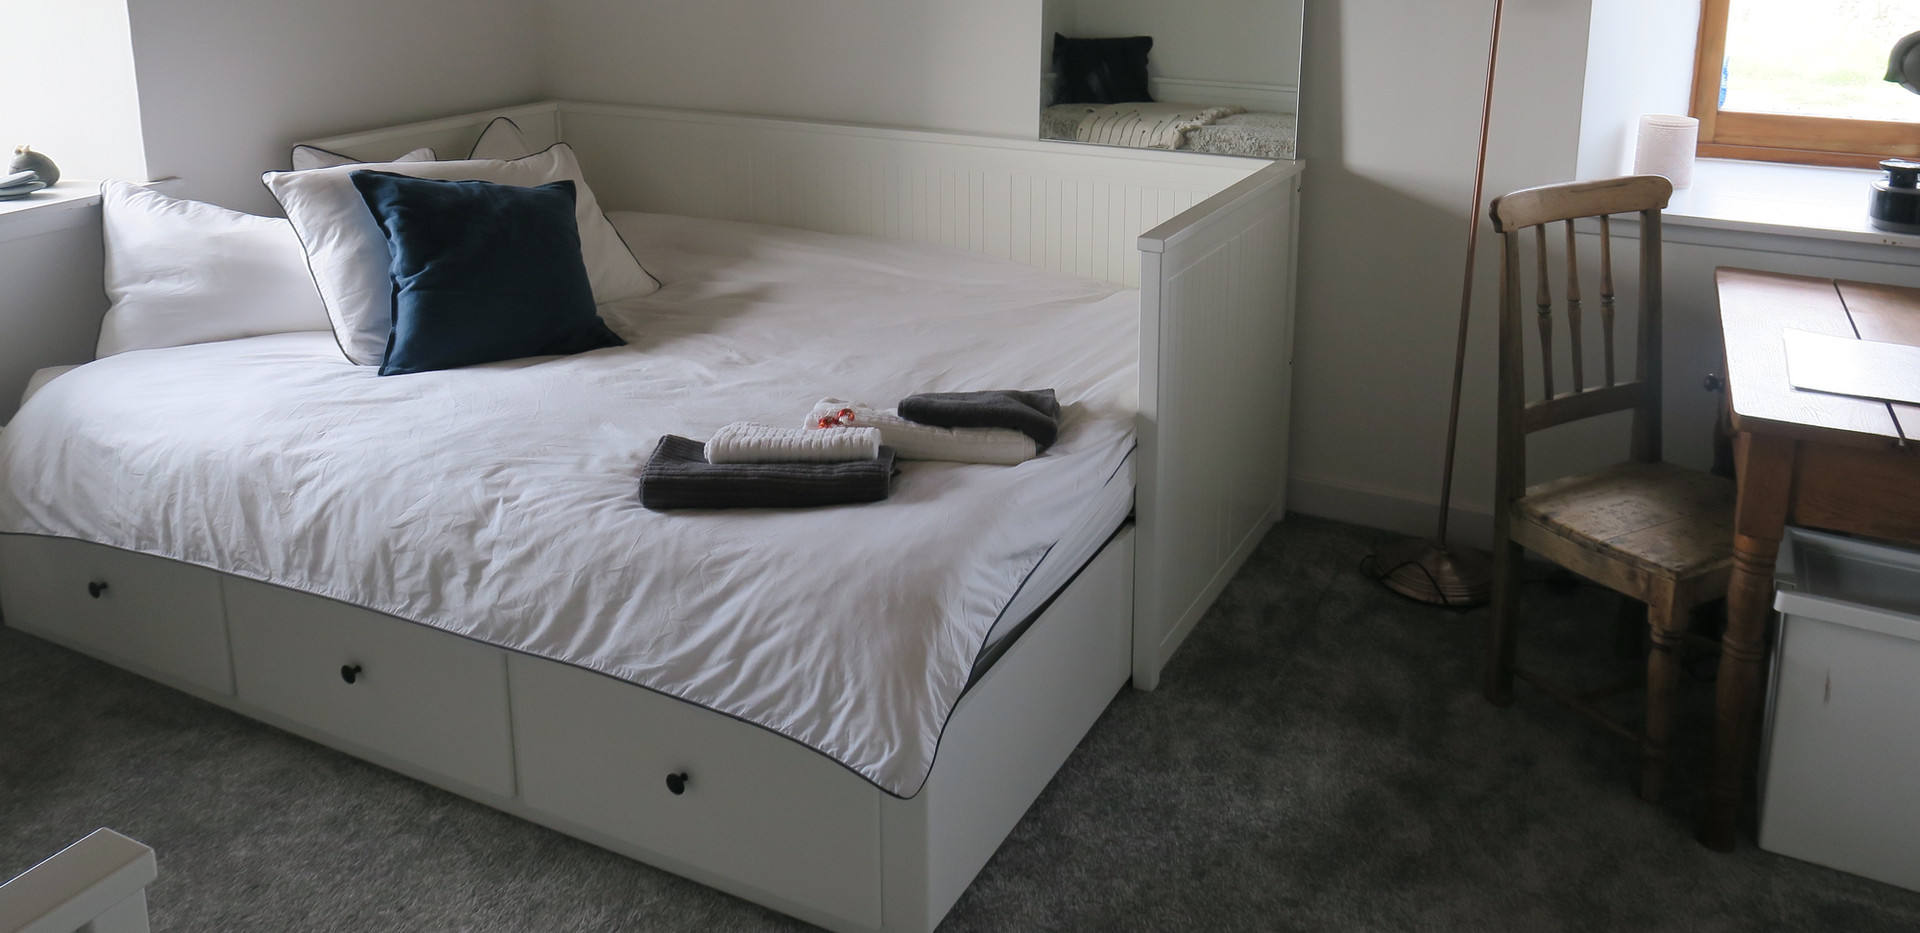 double bed and desk space